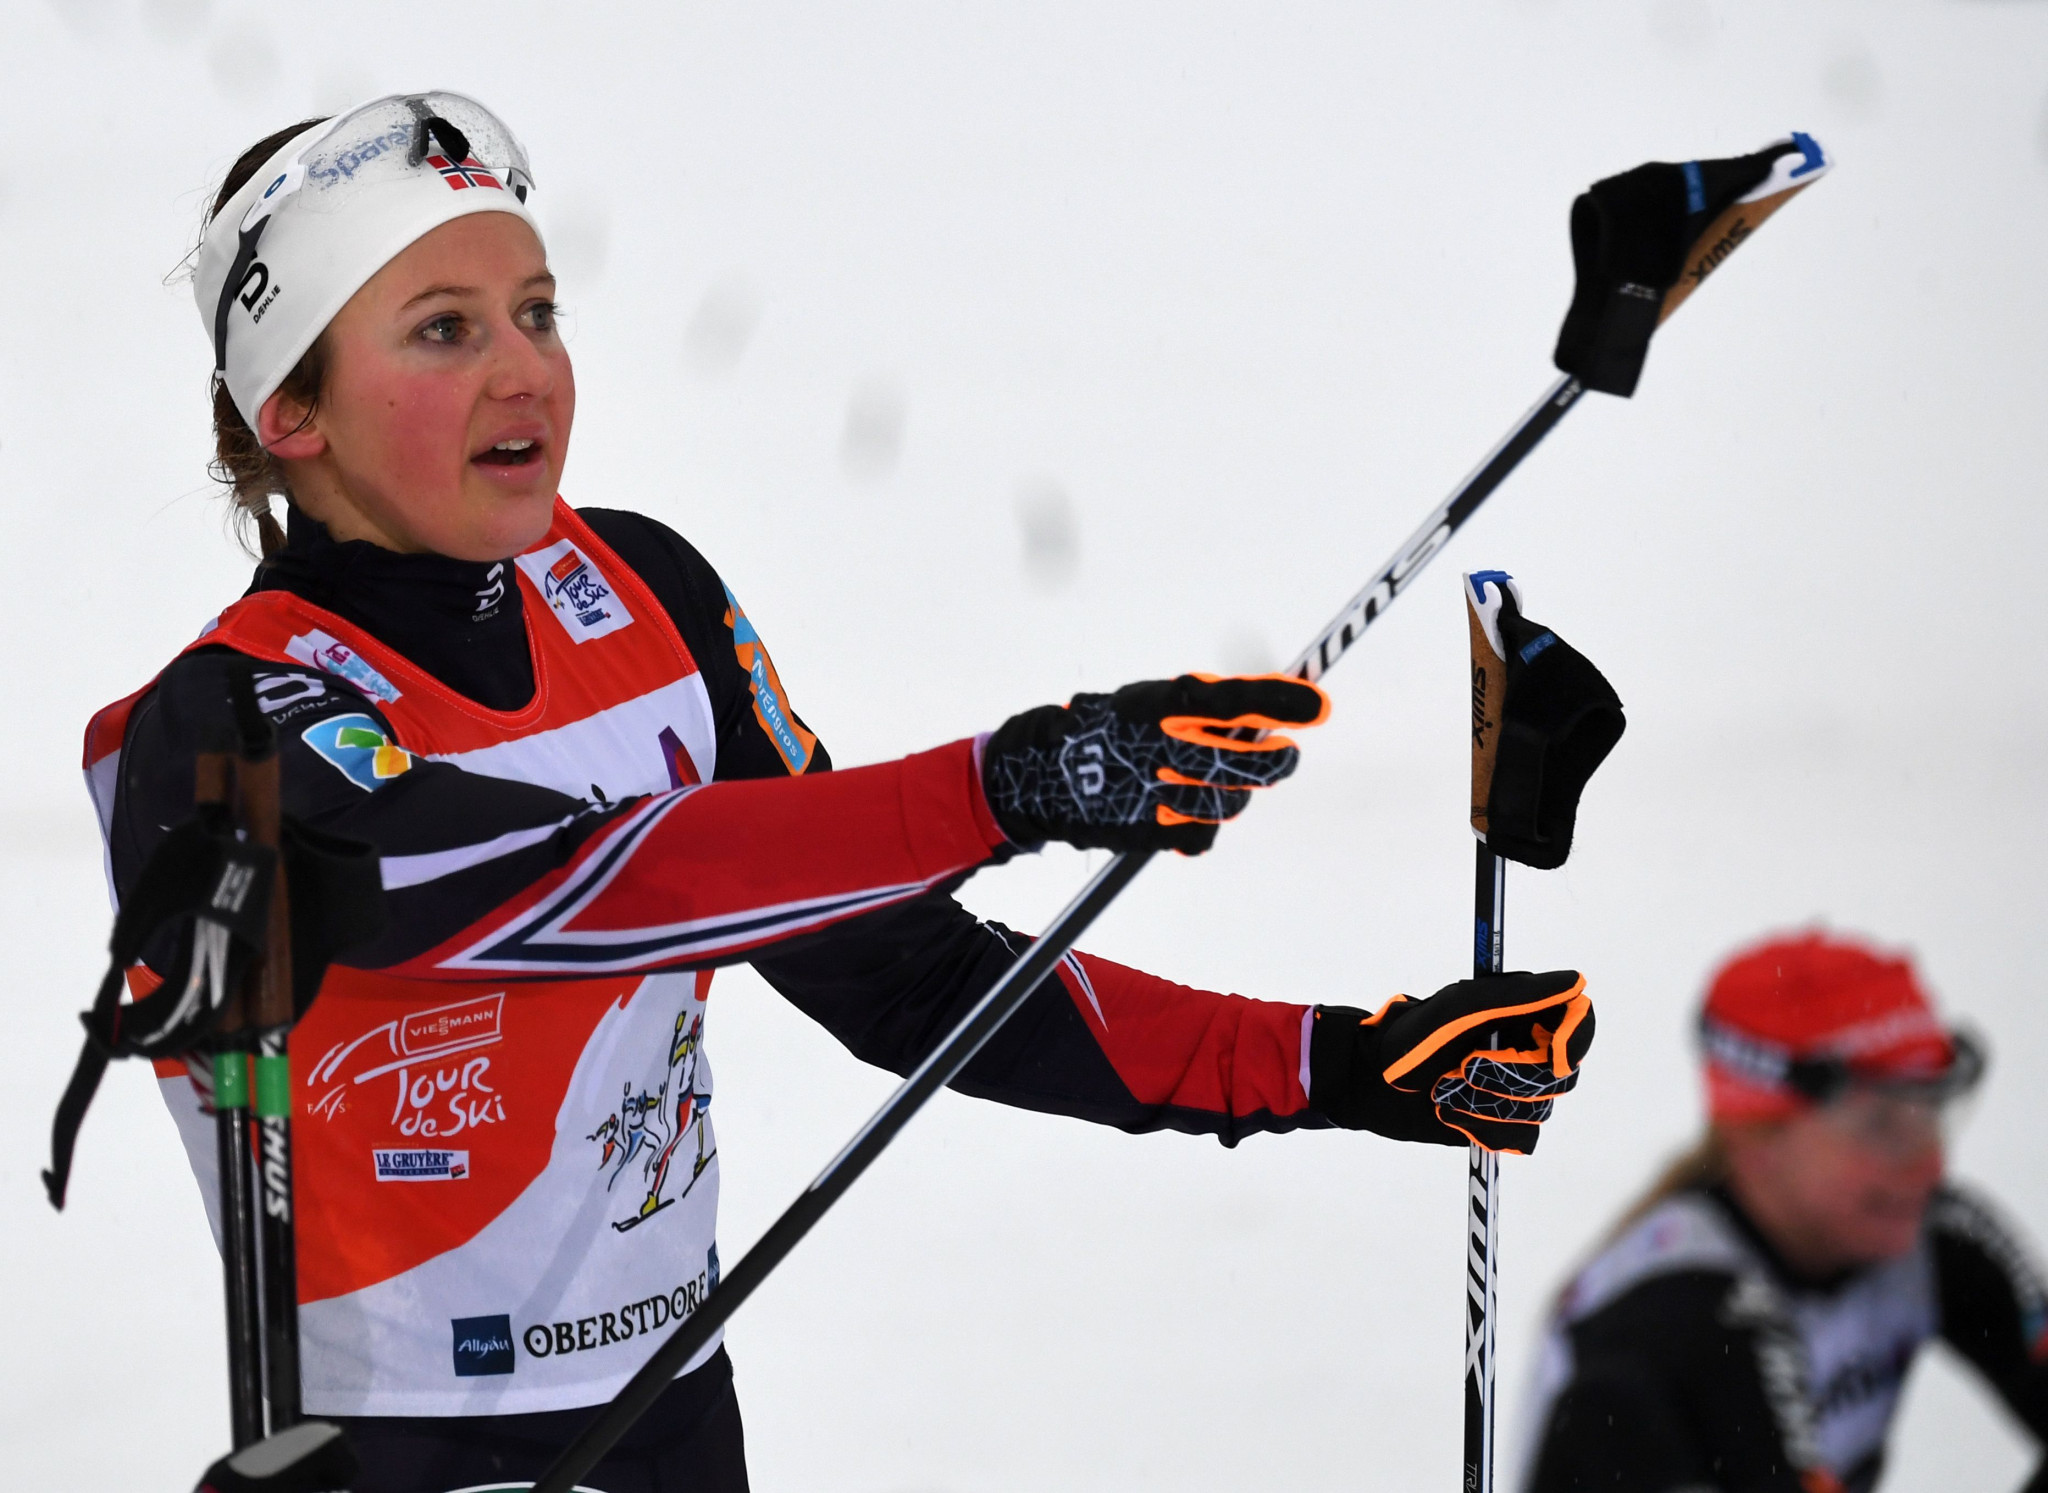 Østberg and Cologna closing in on Tour de Ski successes heading to Italian finale